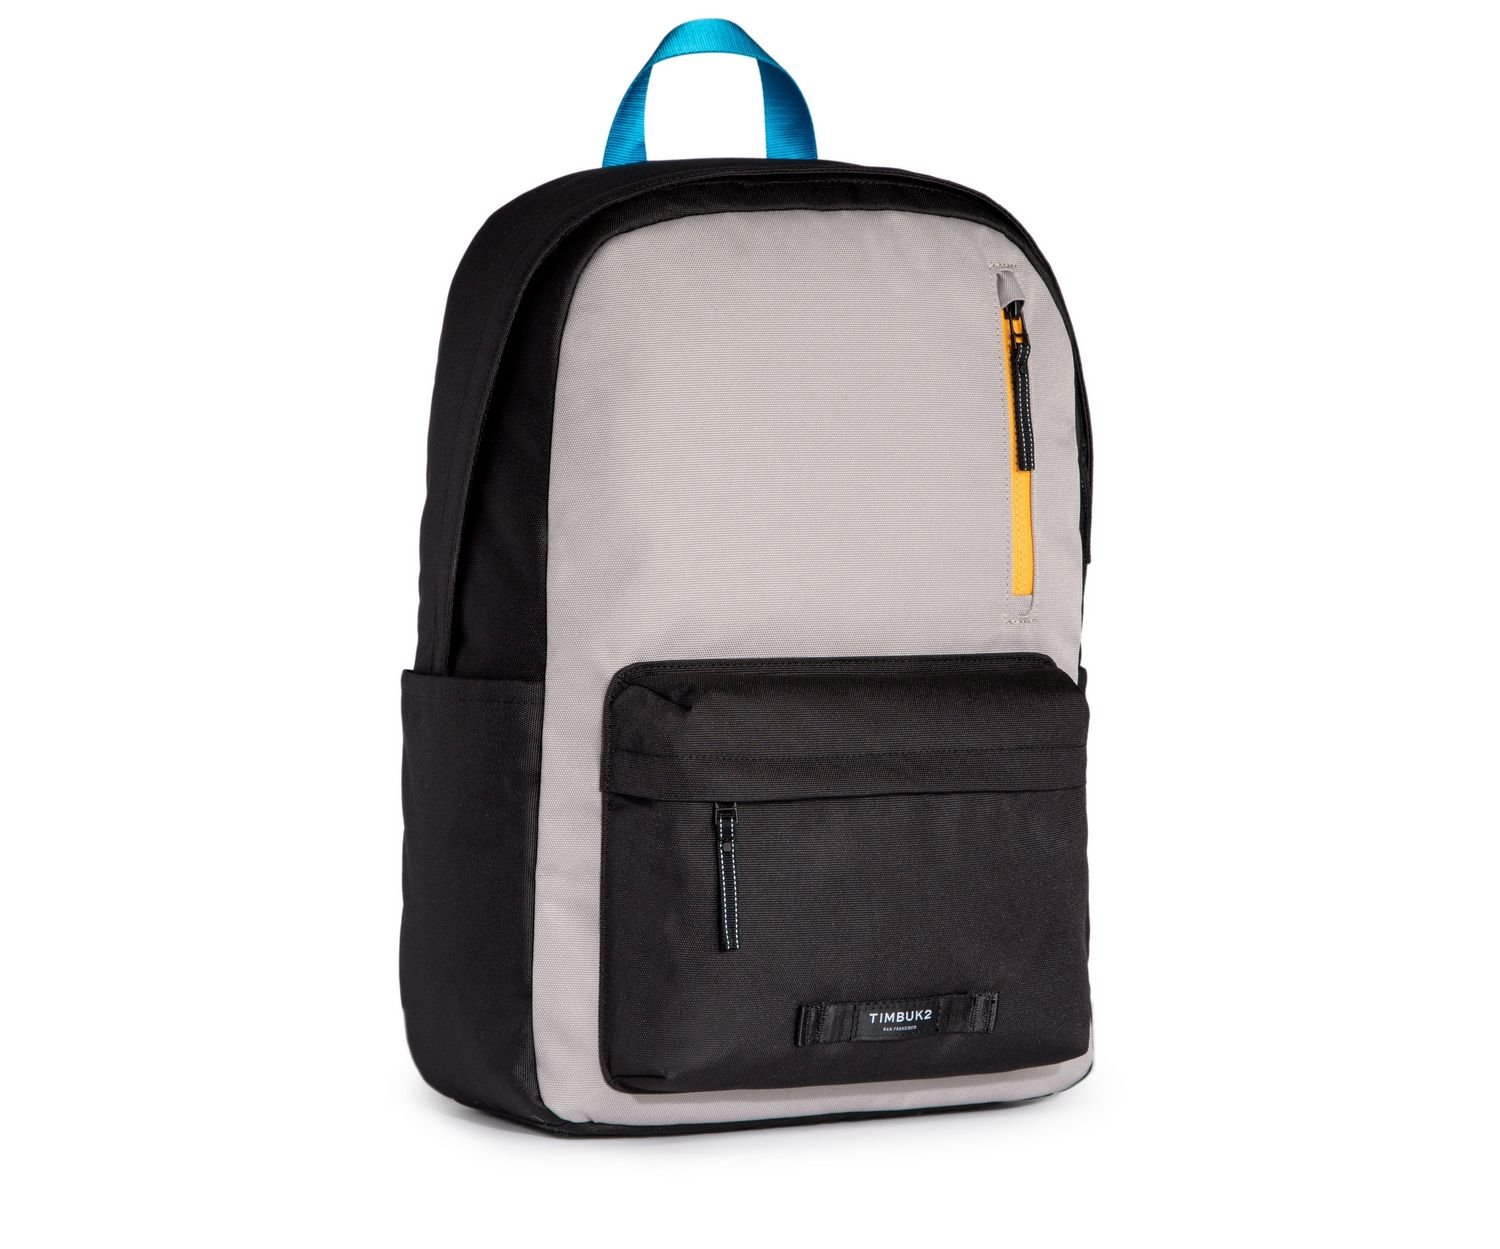 Timbuk2 Rookie Pack, Flux, OS, Flux, One Size by Timbuk2